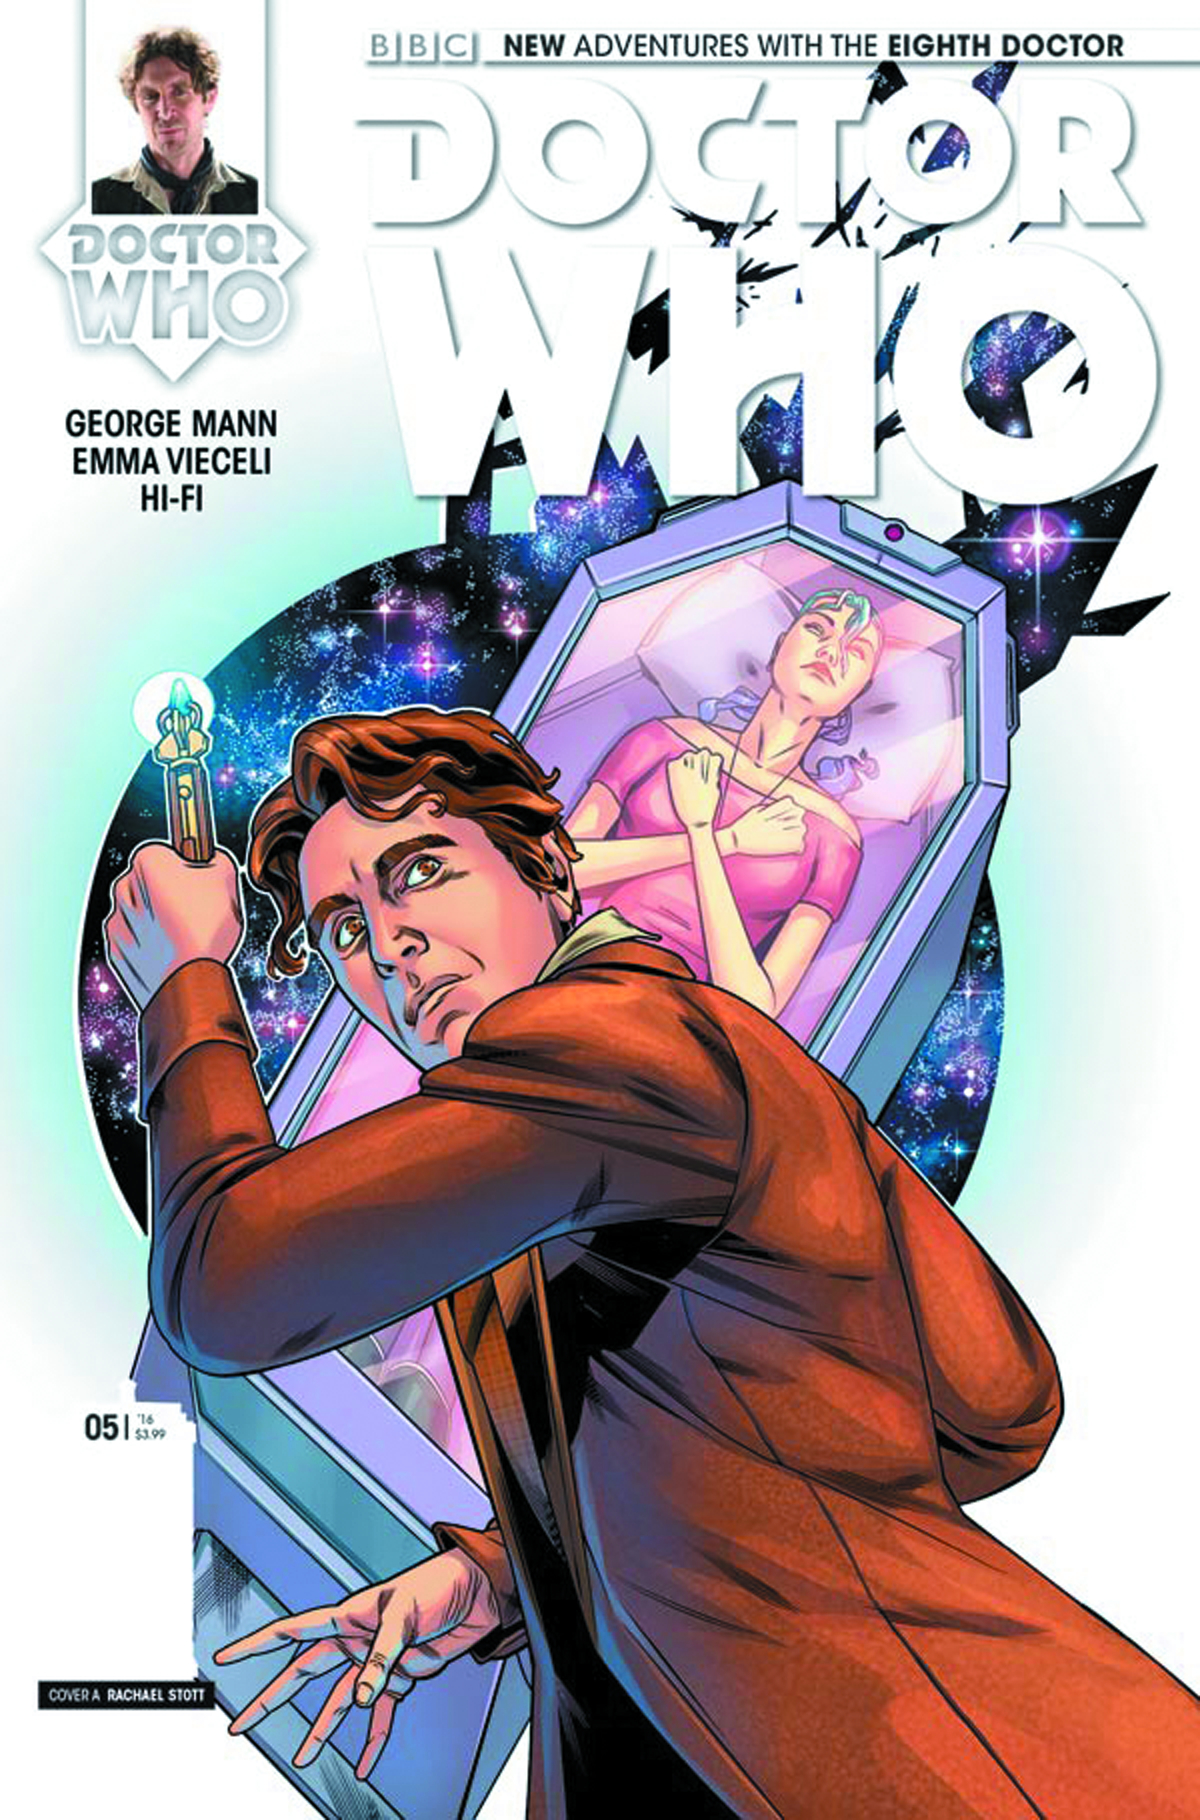 DOCTOR WHO 8TH #5